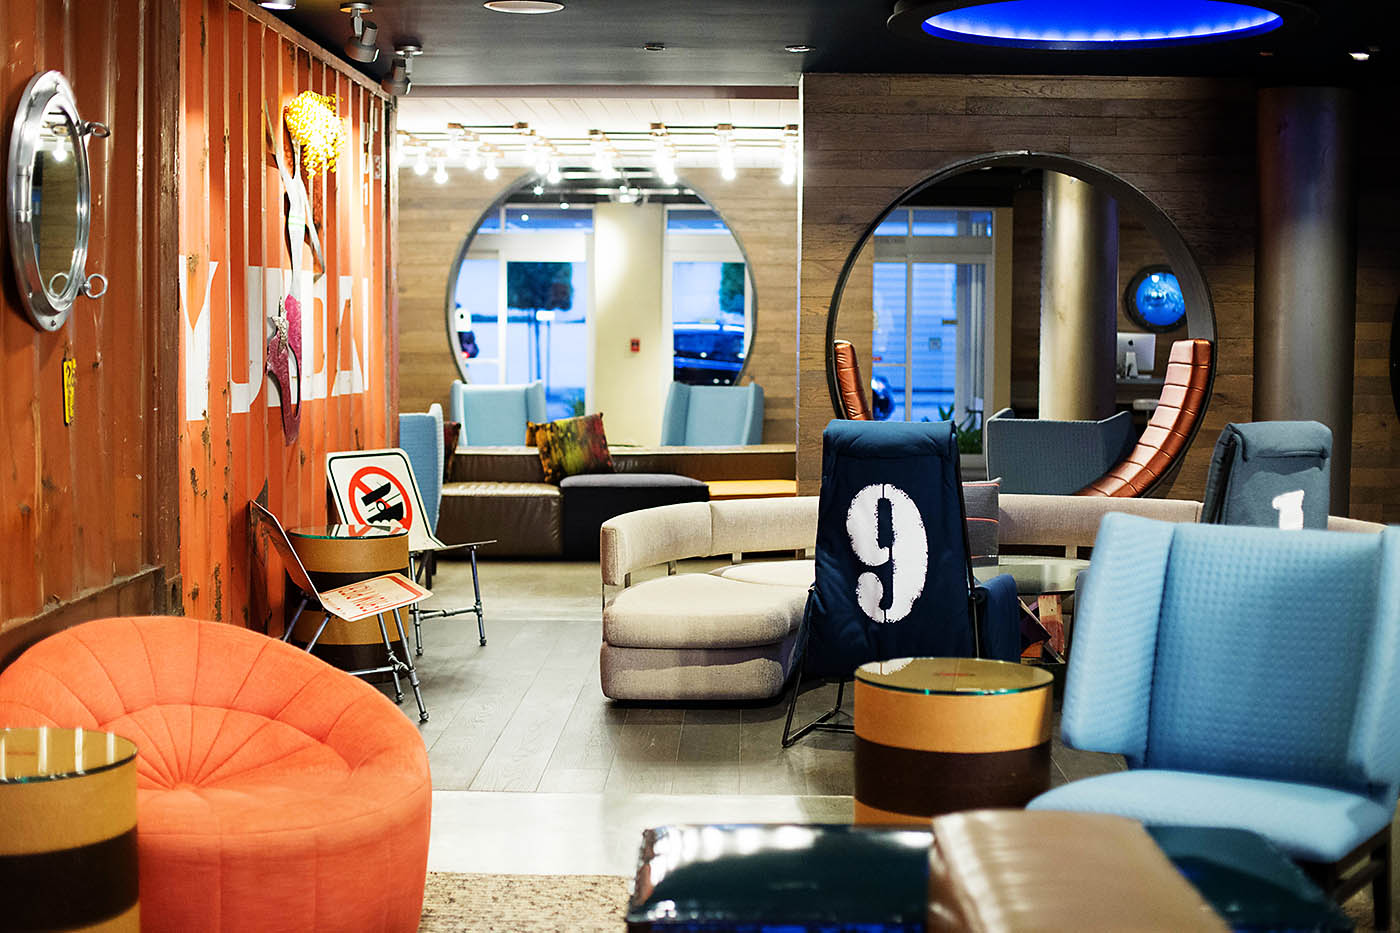 Hotel Zephyr in San Francisco is a fun family property with a great location near Fisherman's Wharf